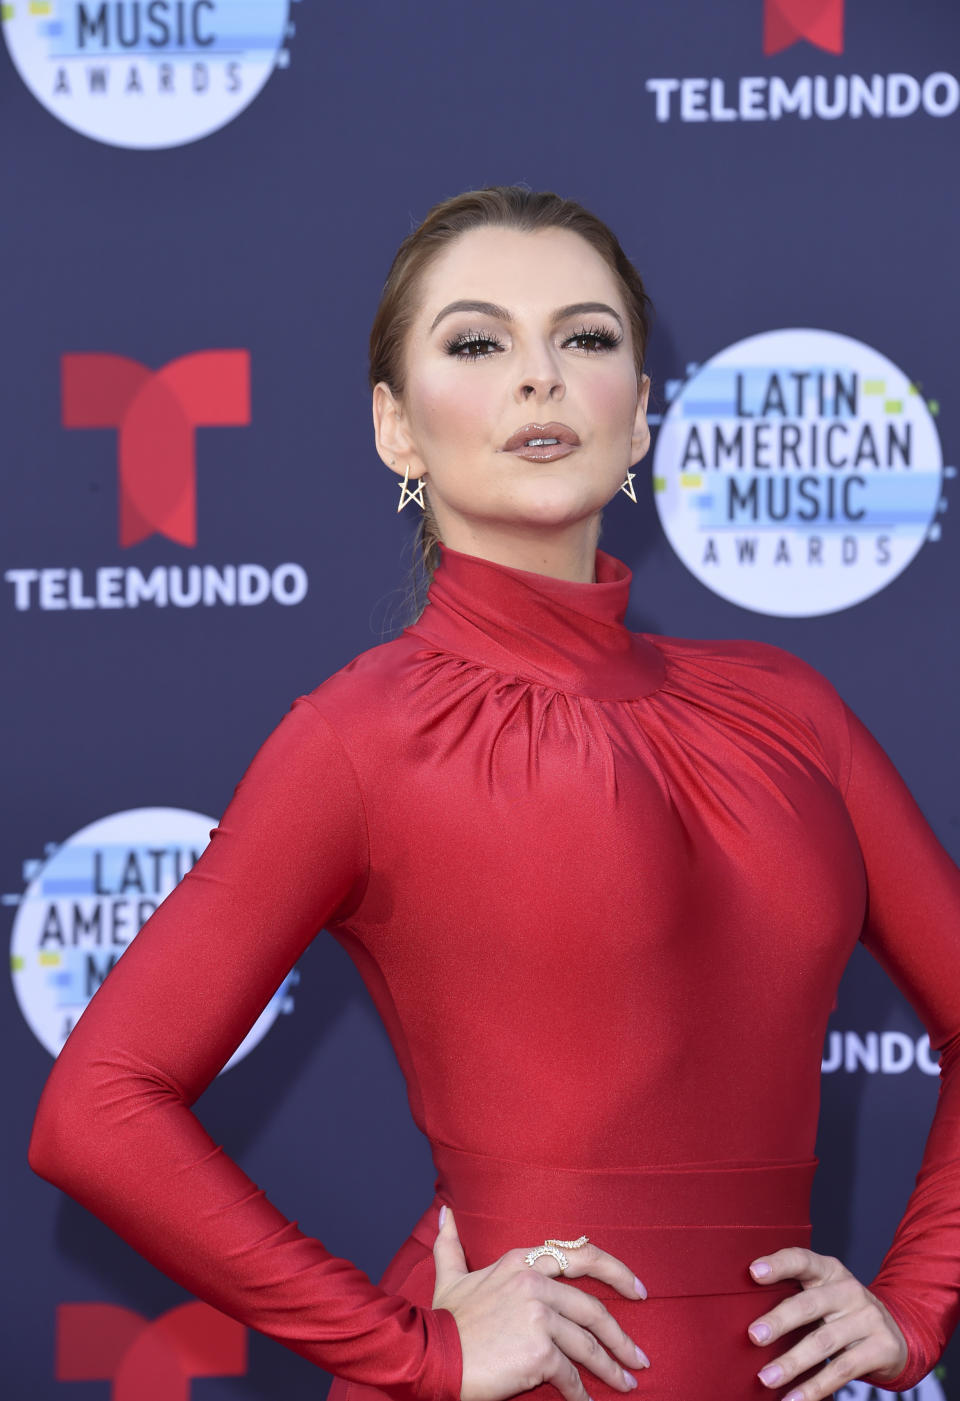 Marjorie de Sousa arrives at the Latin American Music Awards at the Dolby Theatre on Thursday, Oct. 25, 2018, in Los Angeles. (Photo by Richard Shotwell/Invision/AP)